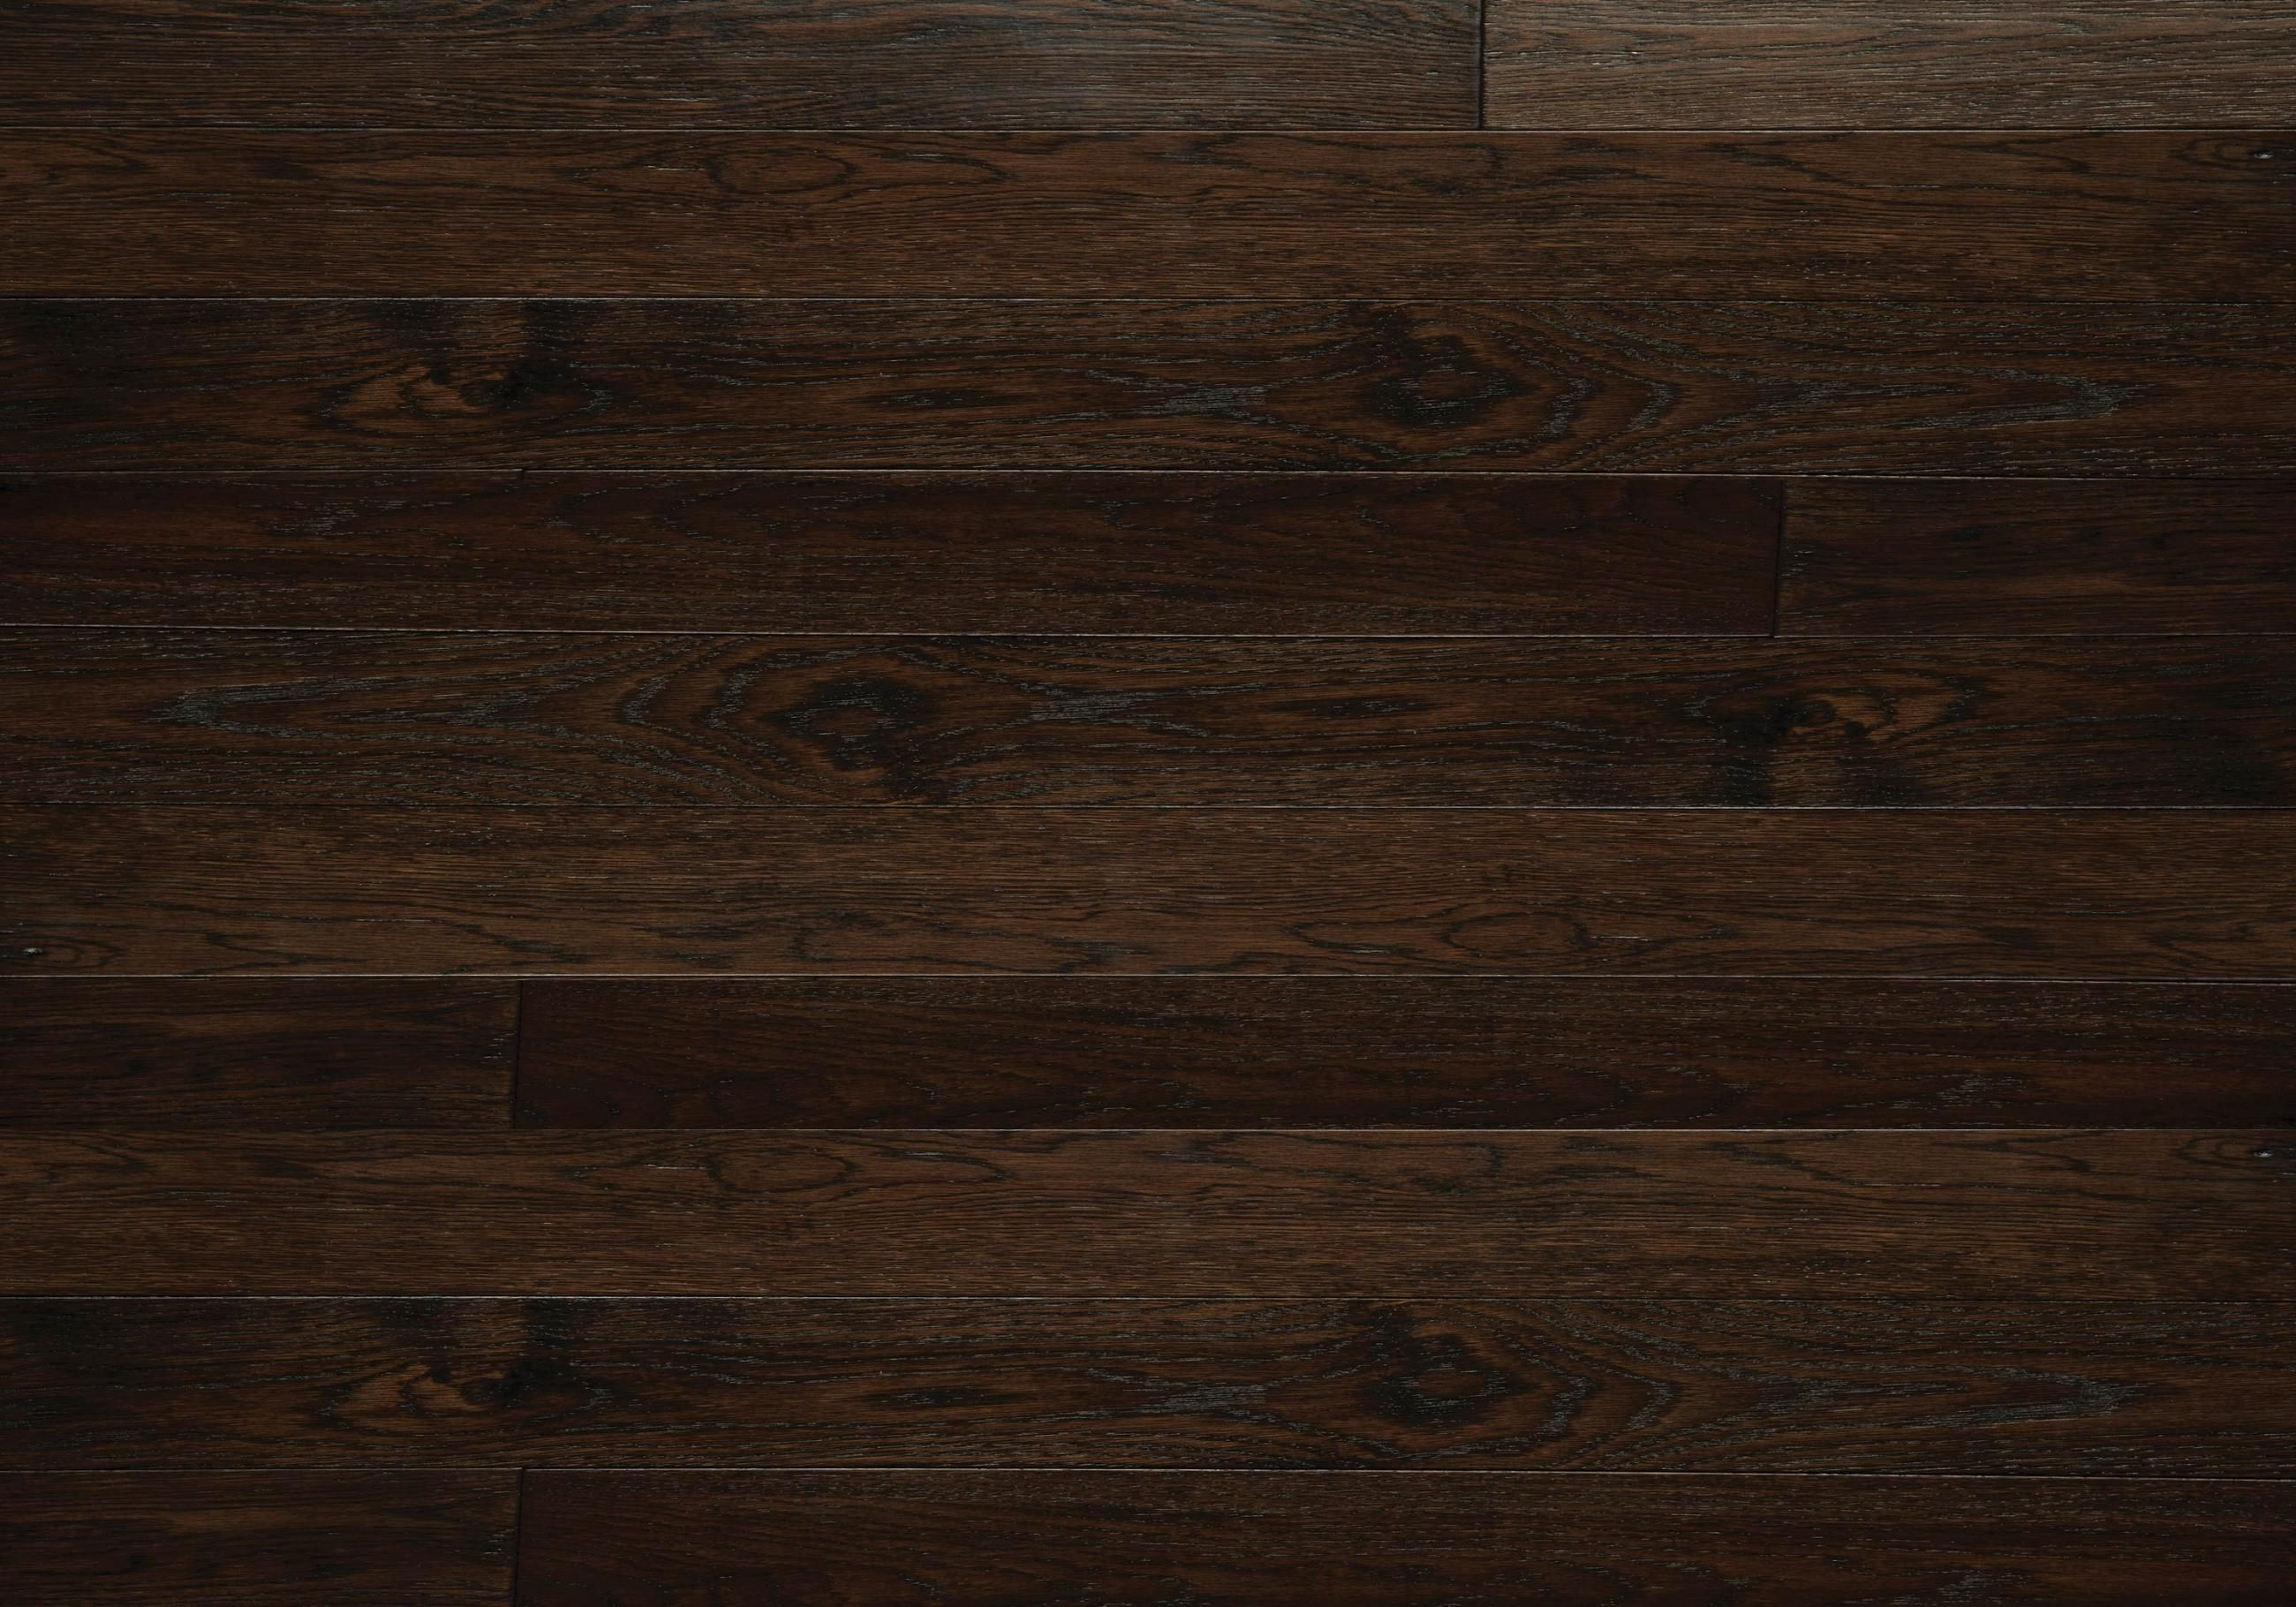 Caribou designer white oak lauzon hardwood flooring for Hardwood flooring sale